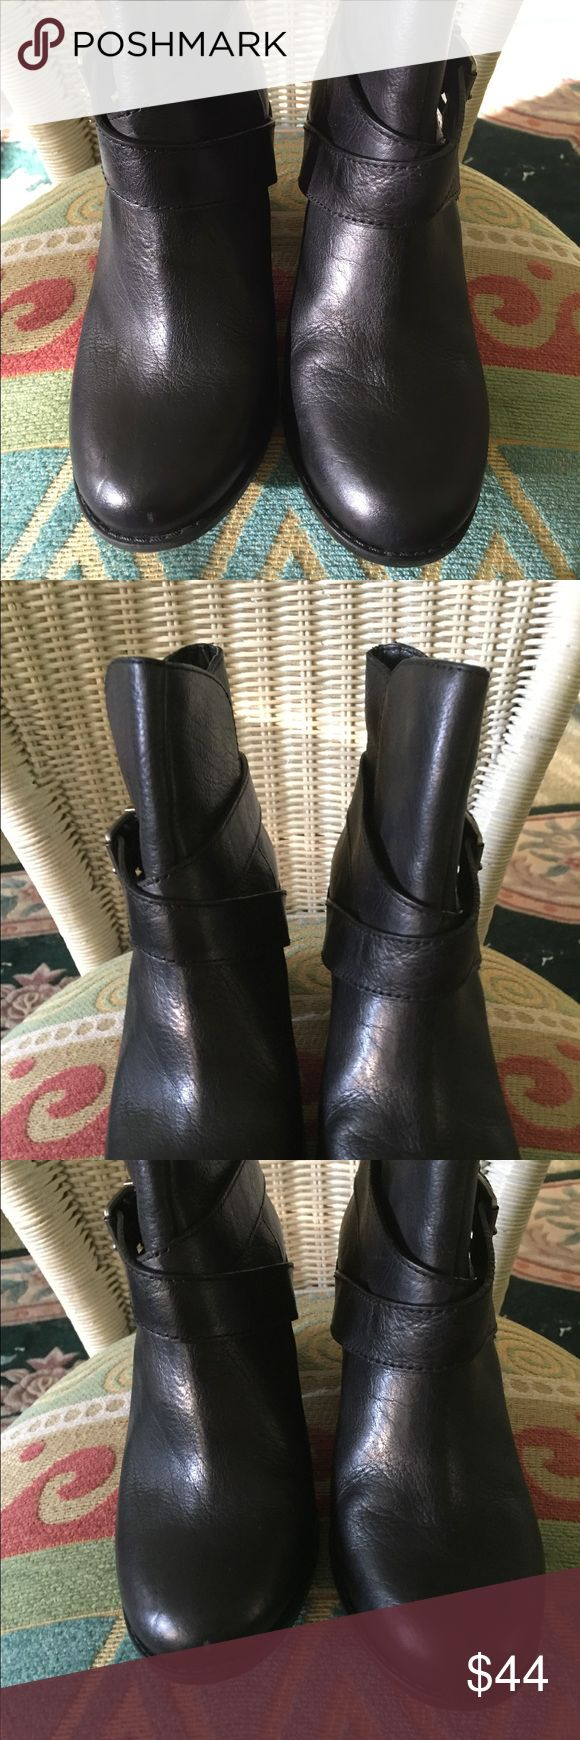 Ladies ankle boots / bcbg generation Black ankle boots with cross cross belting and silver buckle only been worn once in excellent condition BCBGeneration Shoes Ankle Boots & Booties